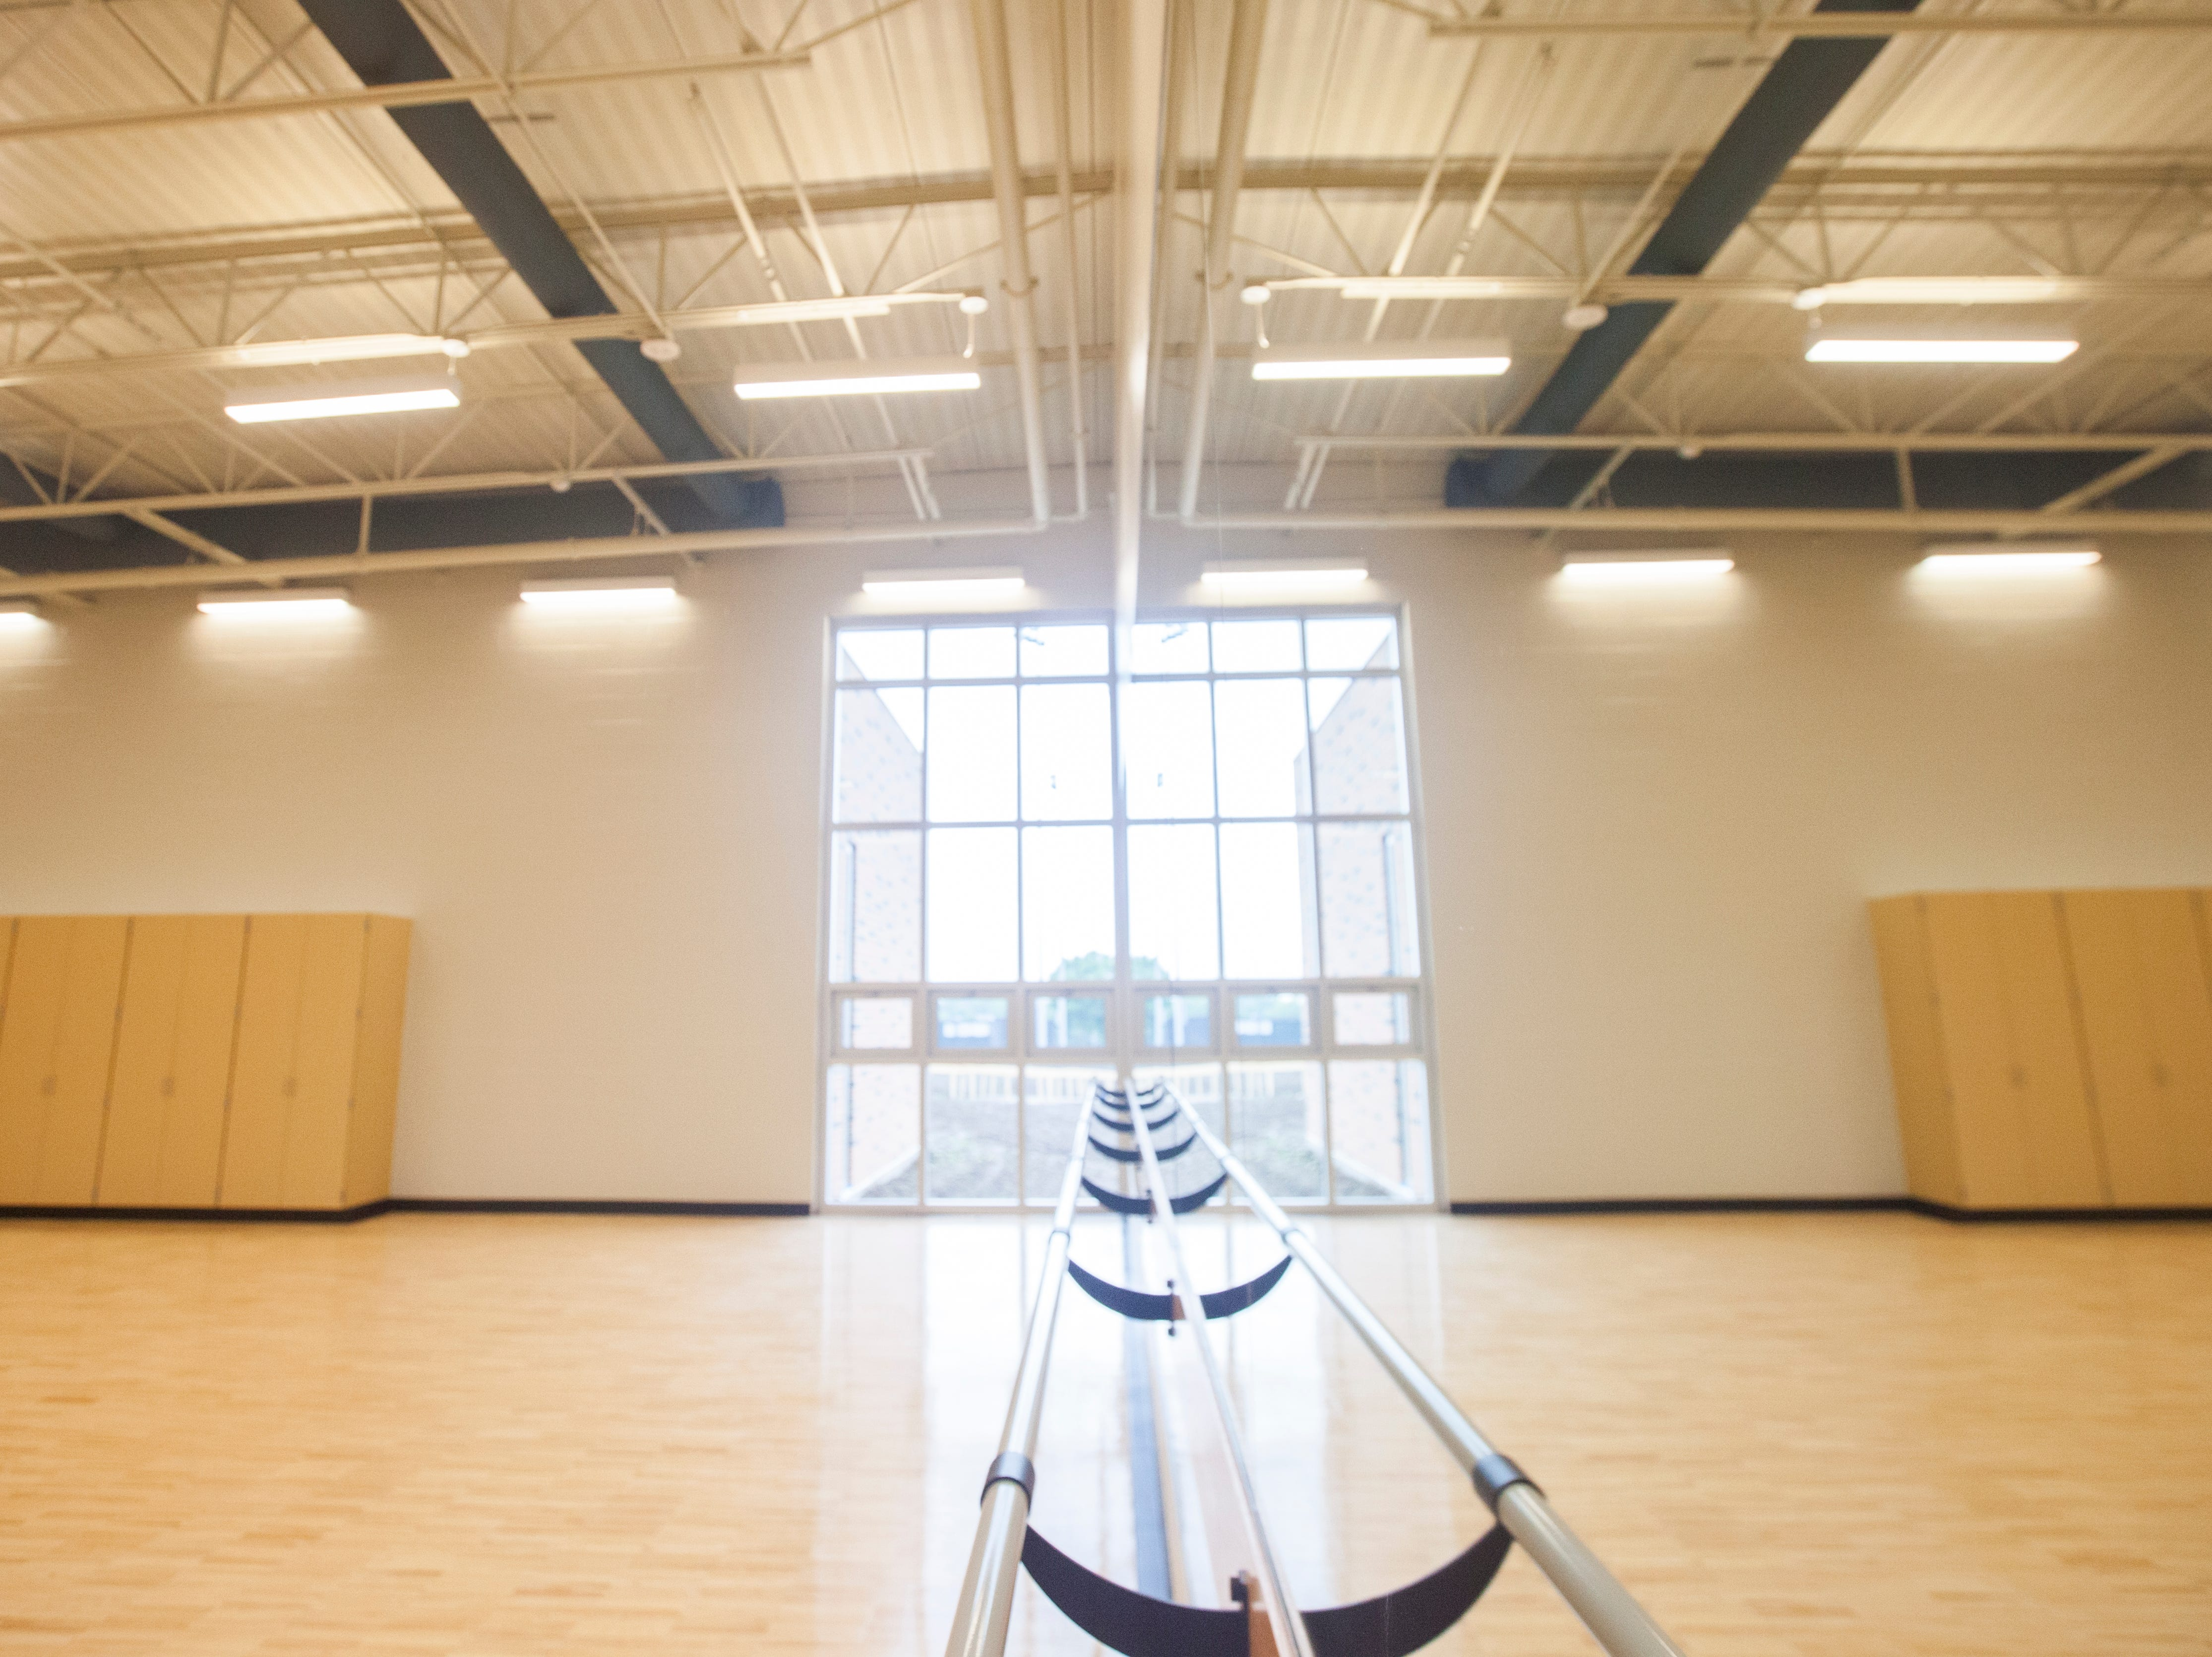 A portion of a new dance room is reflected in a large mirror during a tour of a recently completed addition to facilities on Wednesday, Aug. 15, 2018, at West High School in Iowa City. The addition was the first phase of renovations set to take place for the building that opened in 1968.